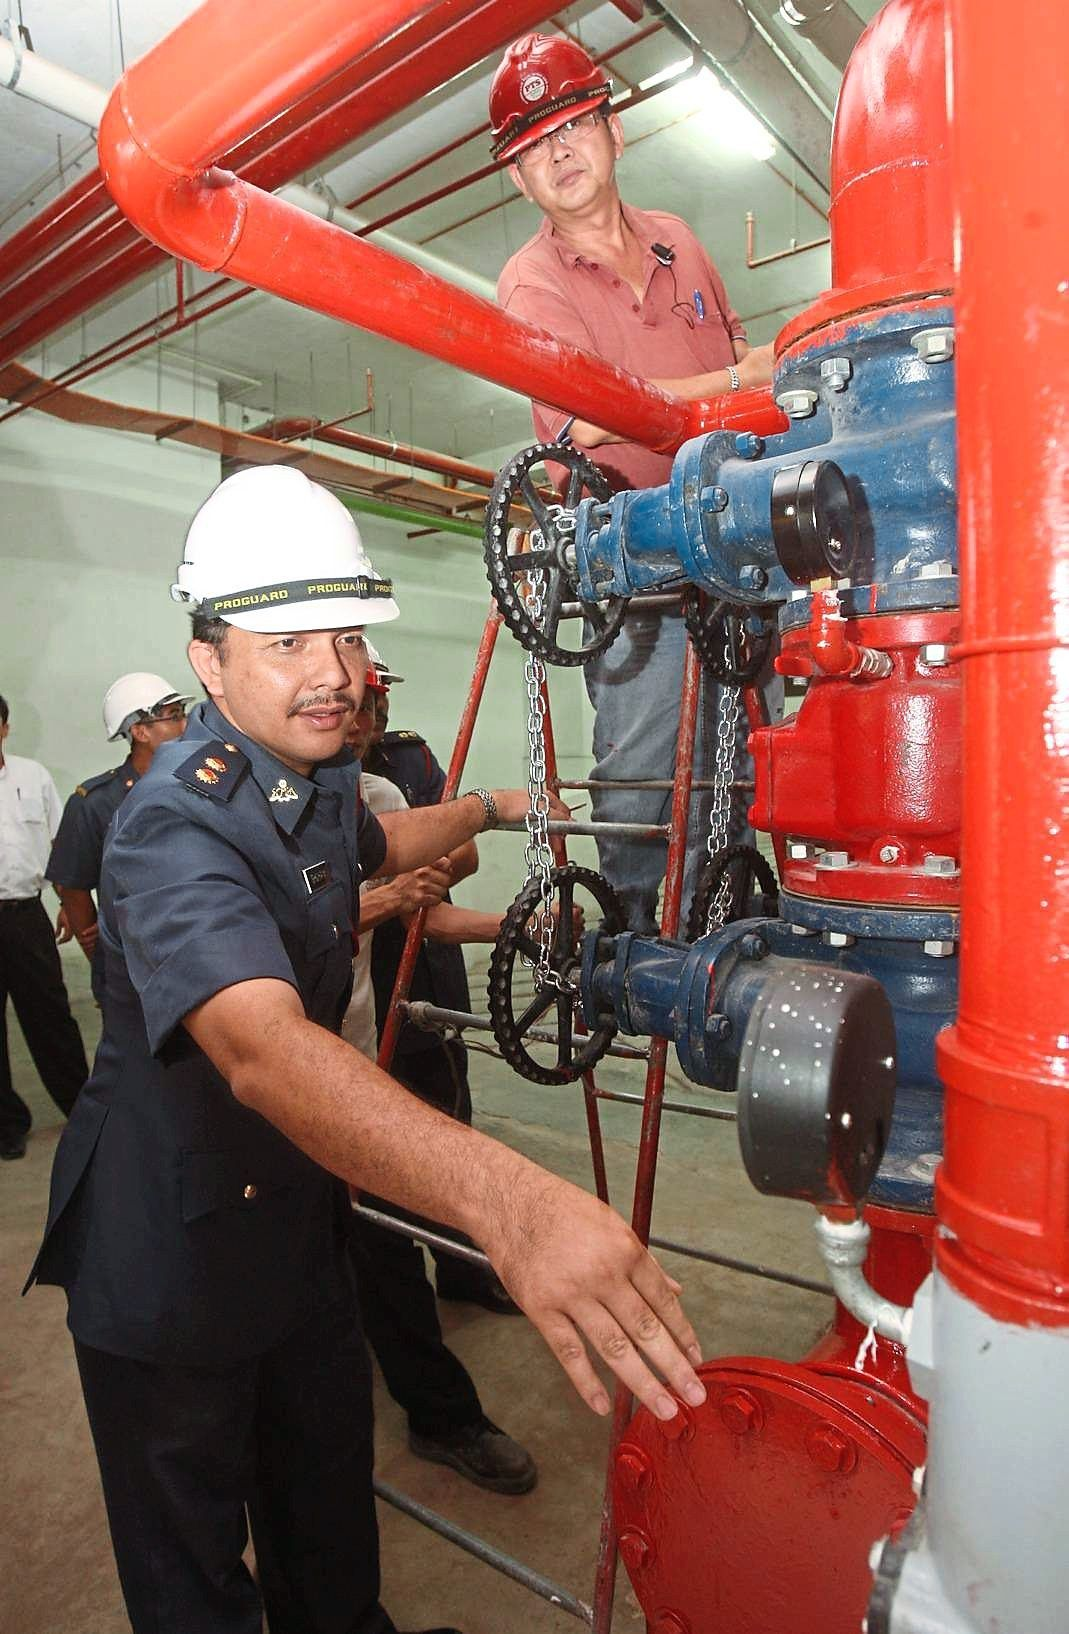 A Fire and Rescue Department enforcement officer checking a pressure gauge during a fire safety  inspection.